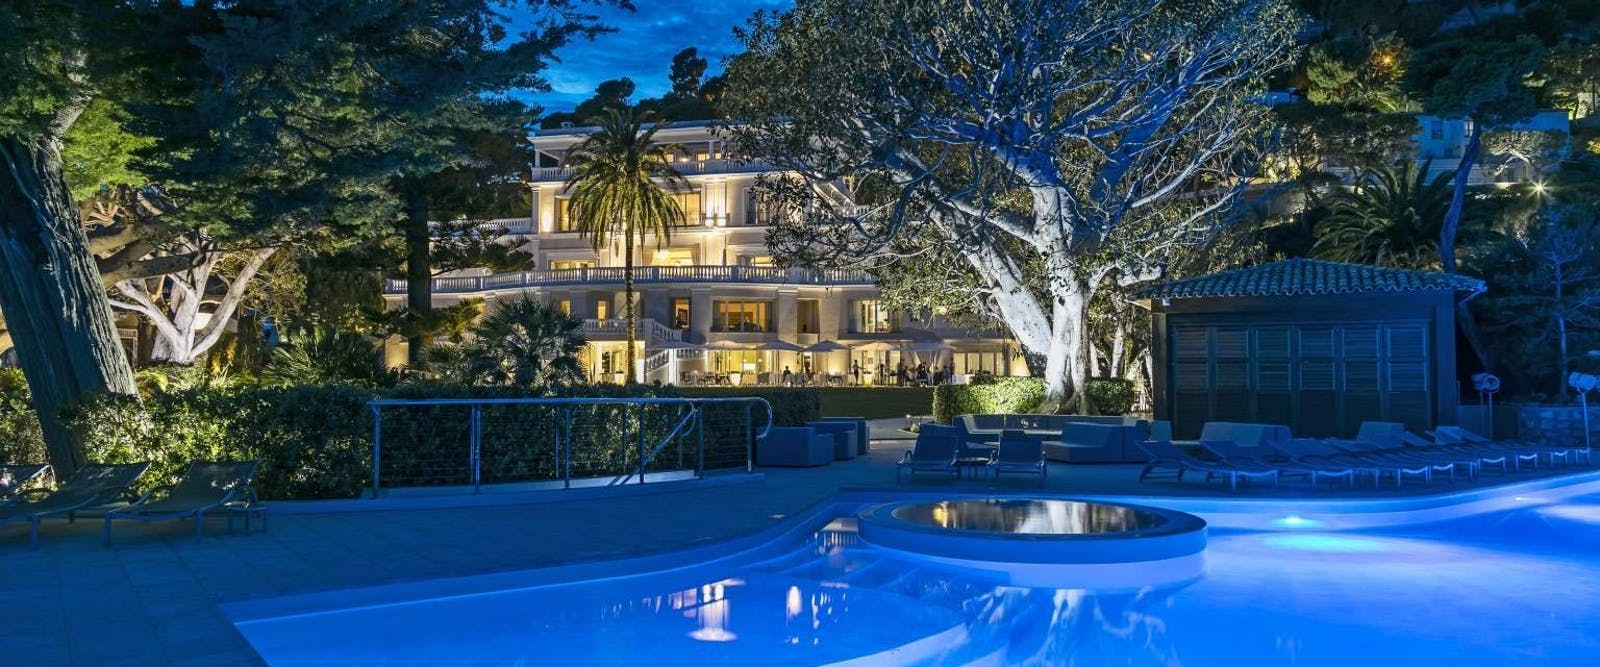 Pool in the Evening at Cap Estel, French Riviera